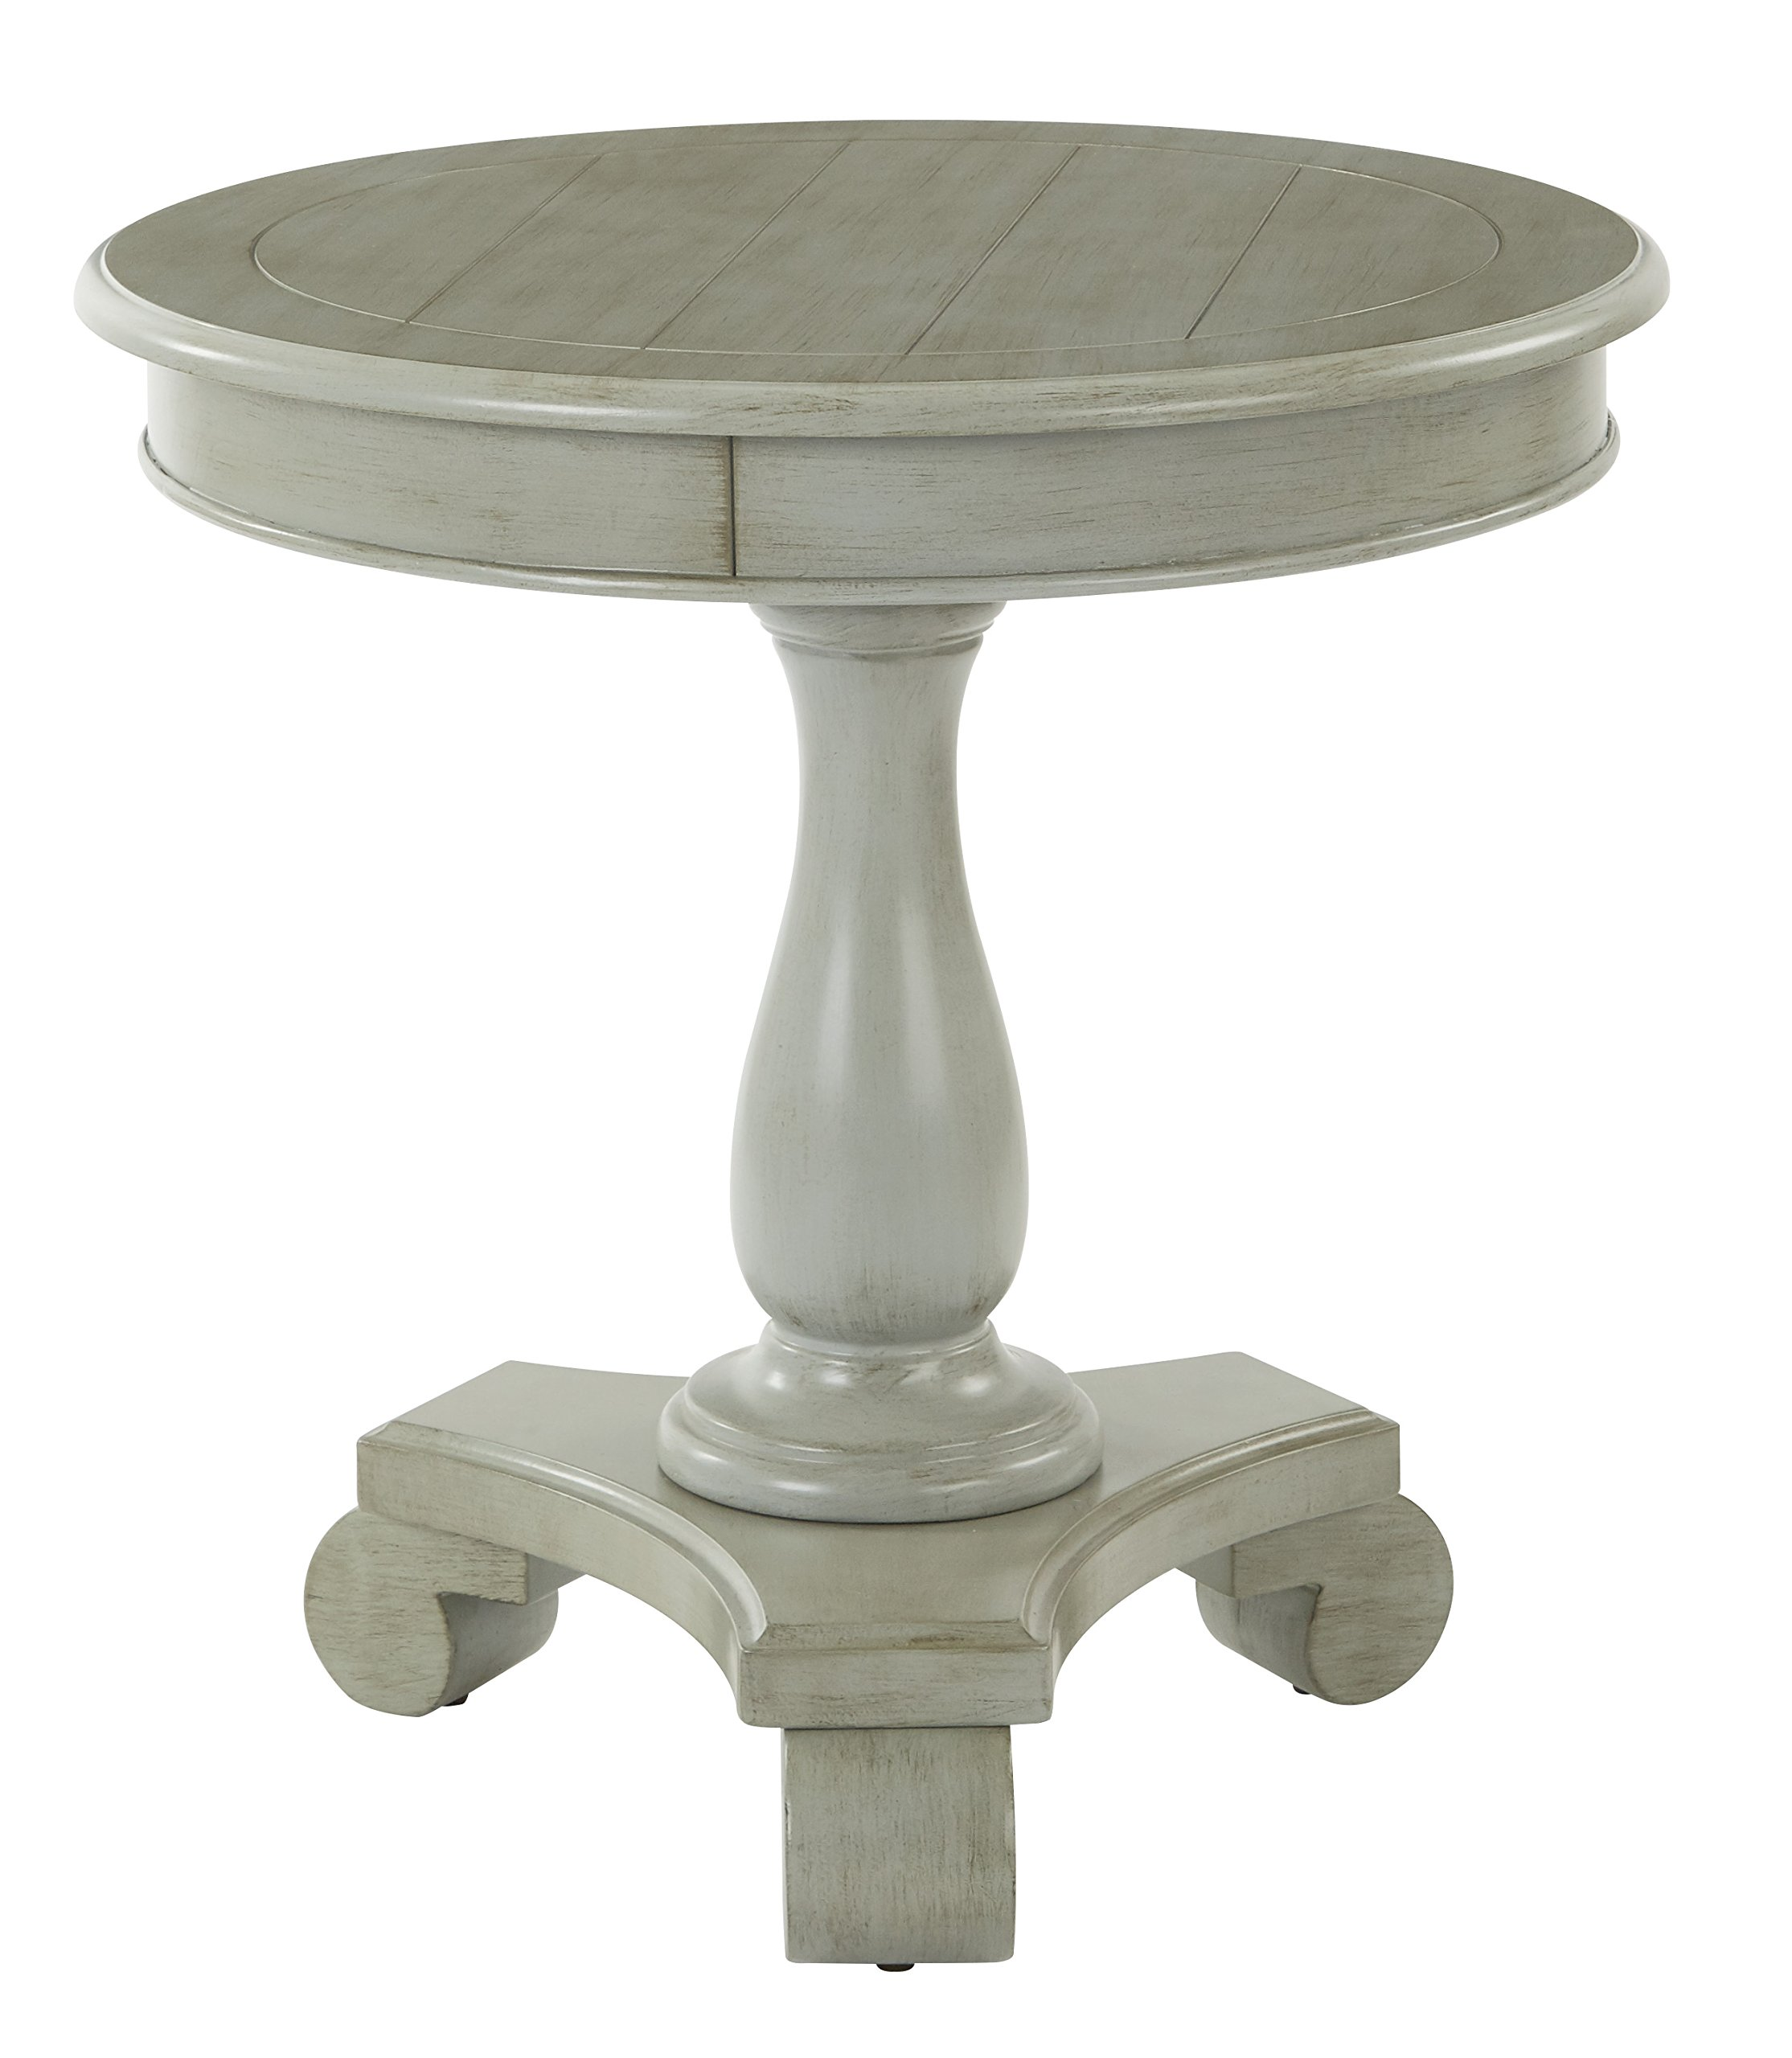 antique accent tables small inspired bassett avalon round table grey tall oak side outside storage containers cherry wood dining and chairs pub with fireplace box seat ikea